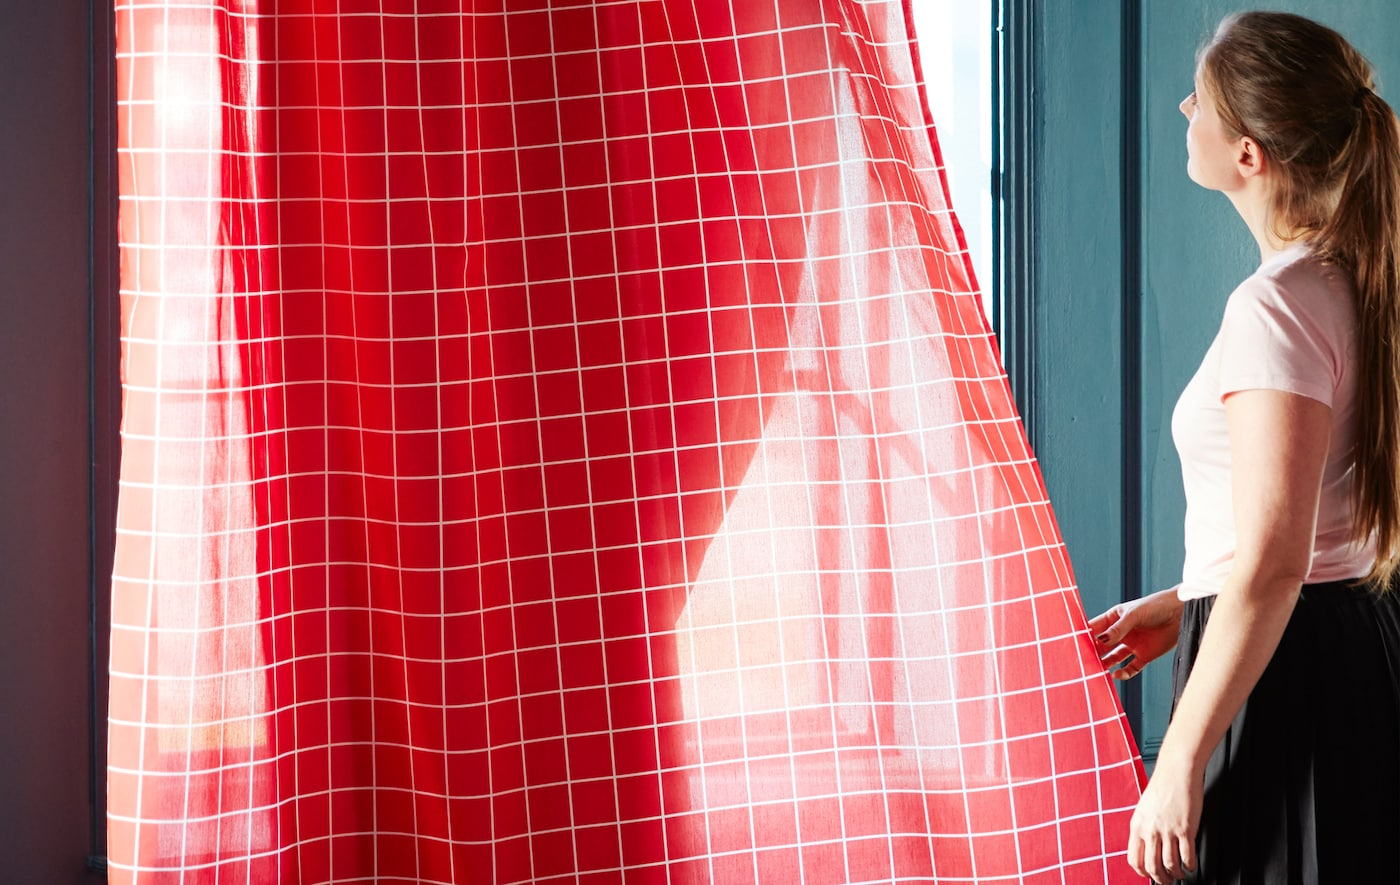 A pair of sheer IKEA ROSALILL curtains with white lines on a red background are letting some sunshine into a room.